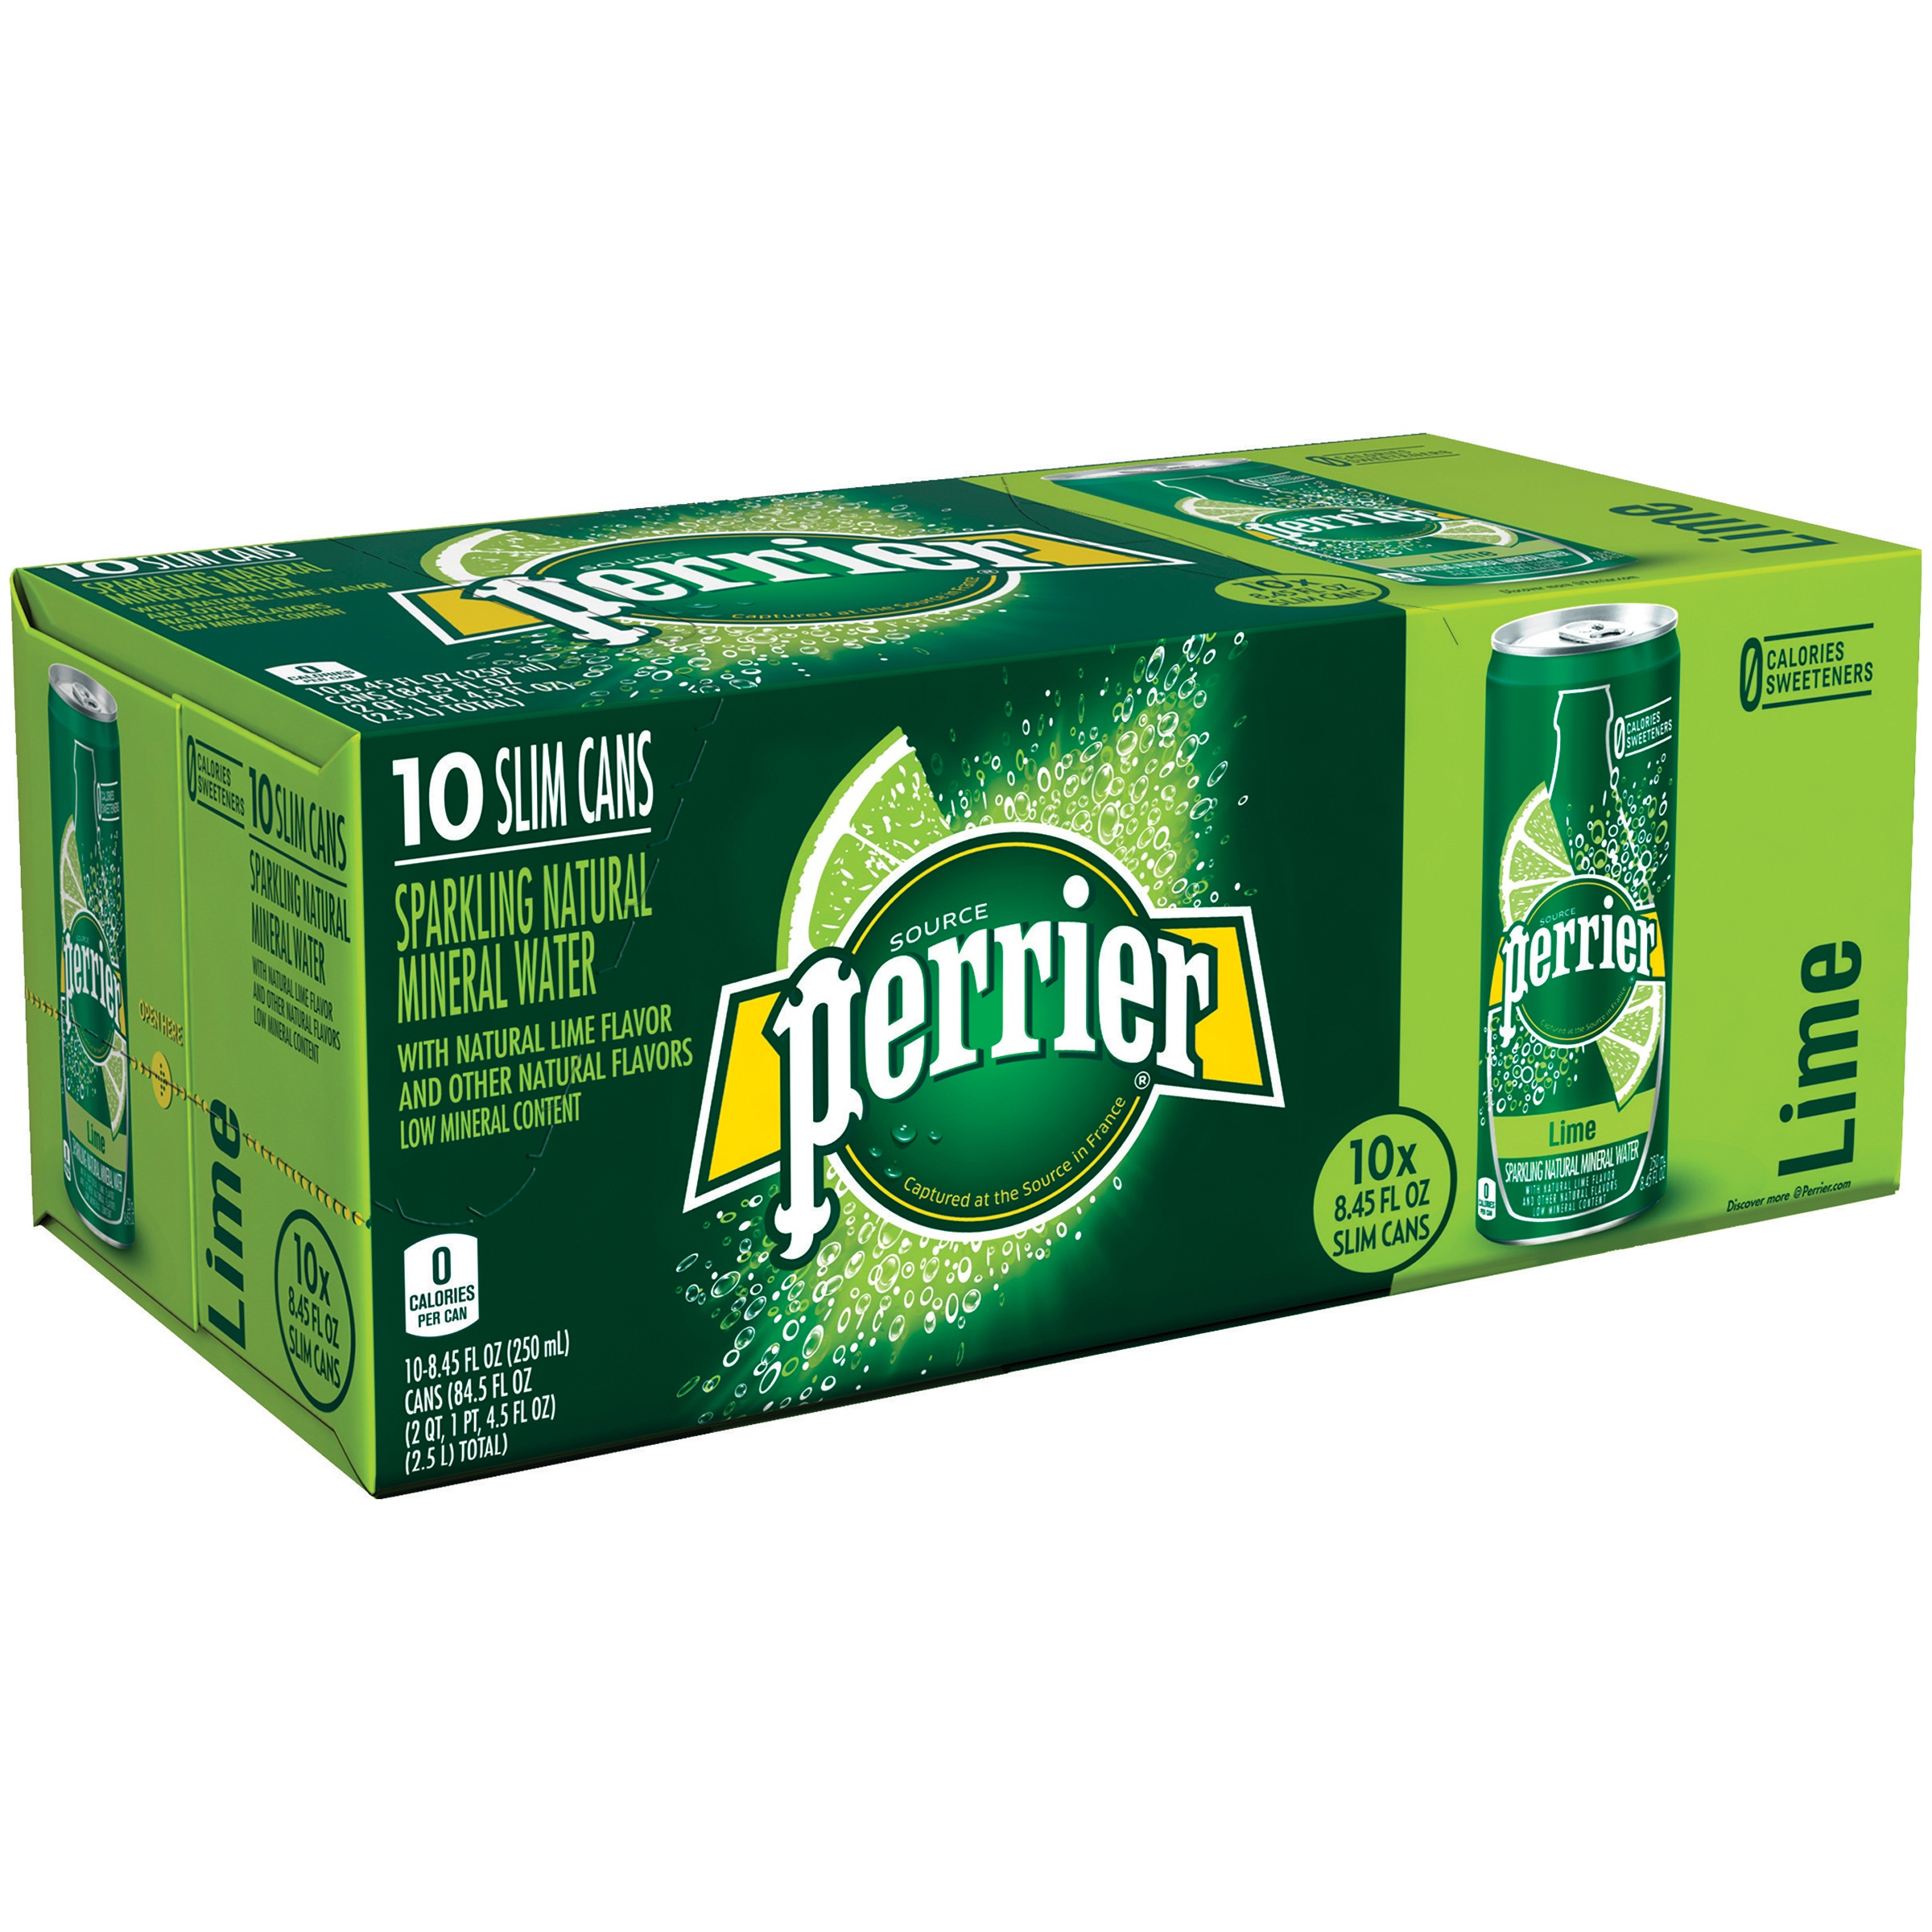 Perrier Sparkling Natural Mineral Water, Lime, 8.4 Fl Oz, 10 Count